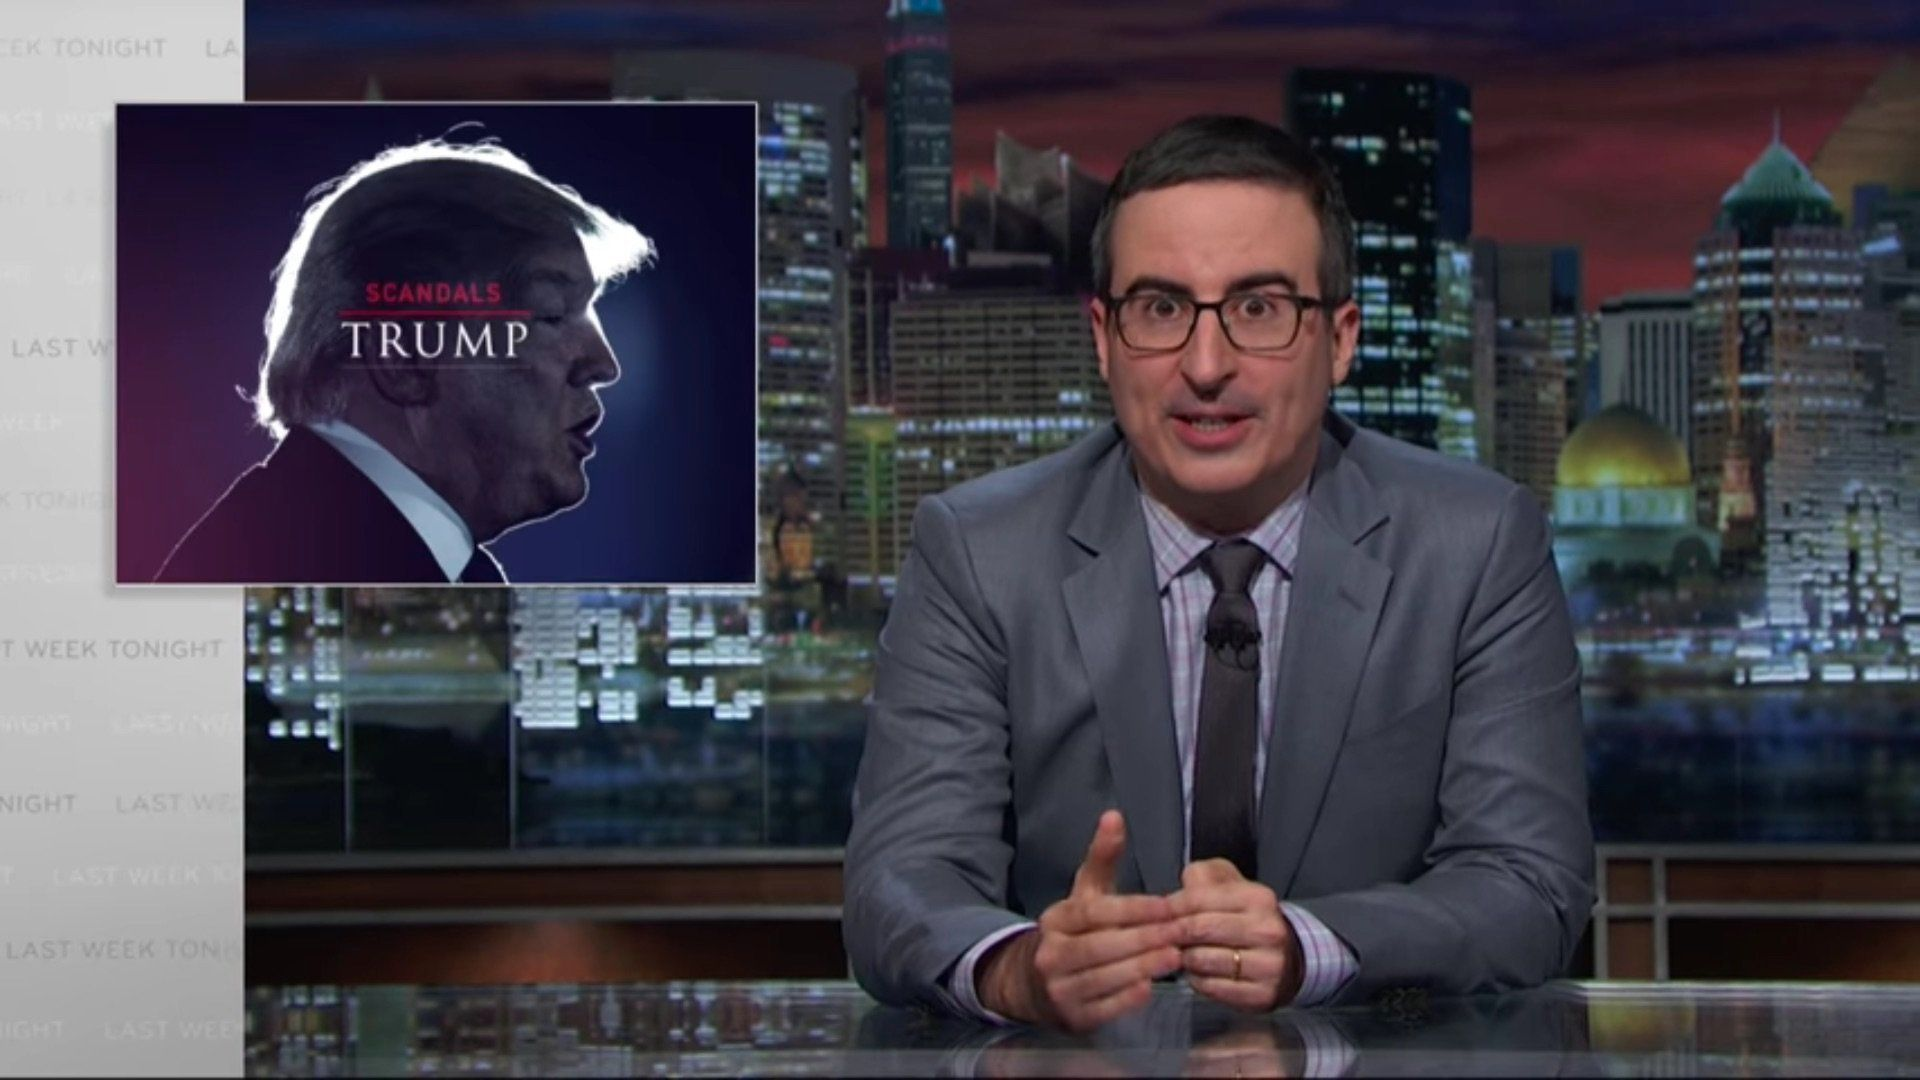 John Oliver Is Back, And He Wants You To Get 'F**king Outraged' Over Donald Trump's